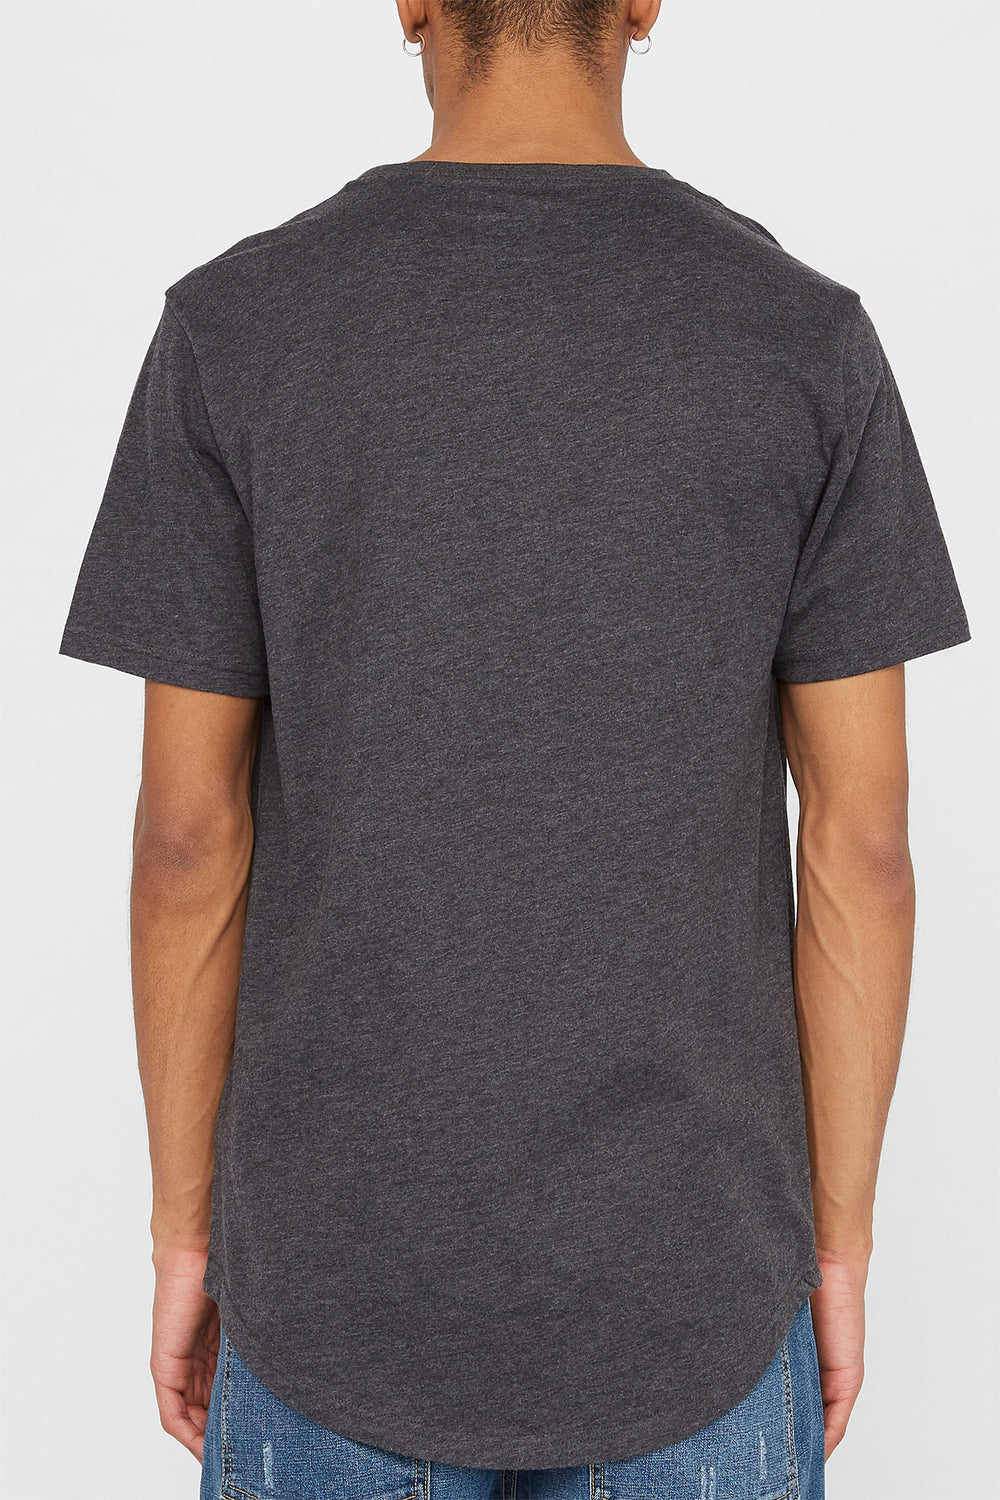 Zoo York Mens Pocket T-Shirt Charcoal